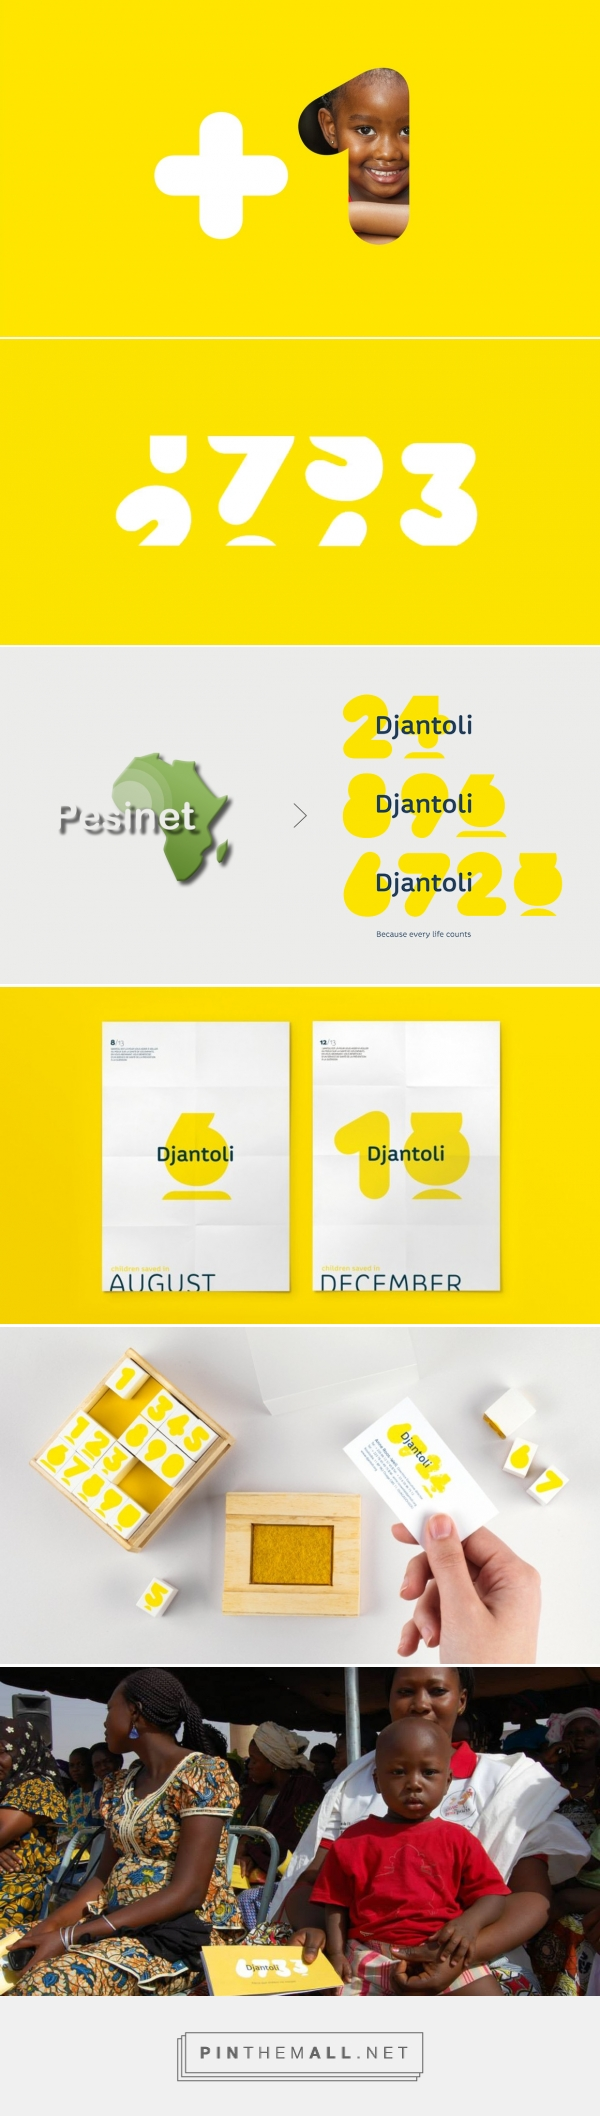 Djantoli   Case study   Landor... - a grouped images picture - Pin Them All